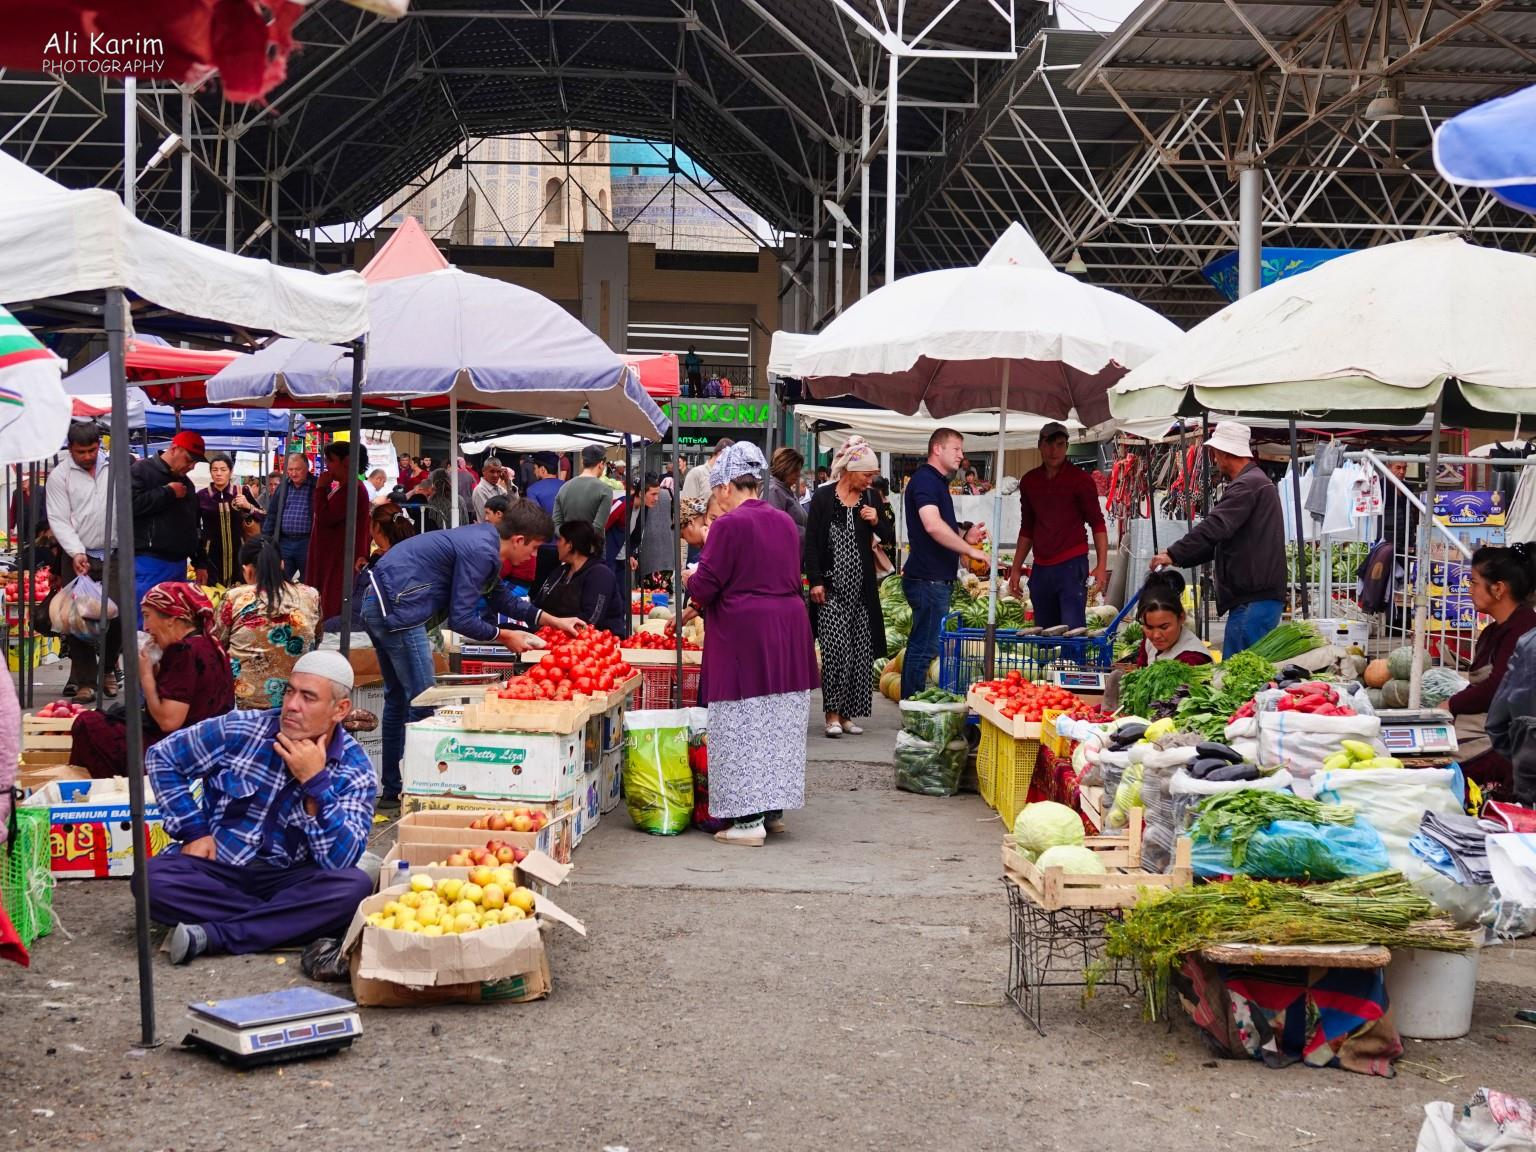 More Samarkand, Busy market extended indoors